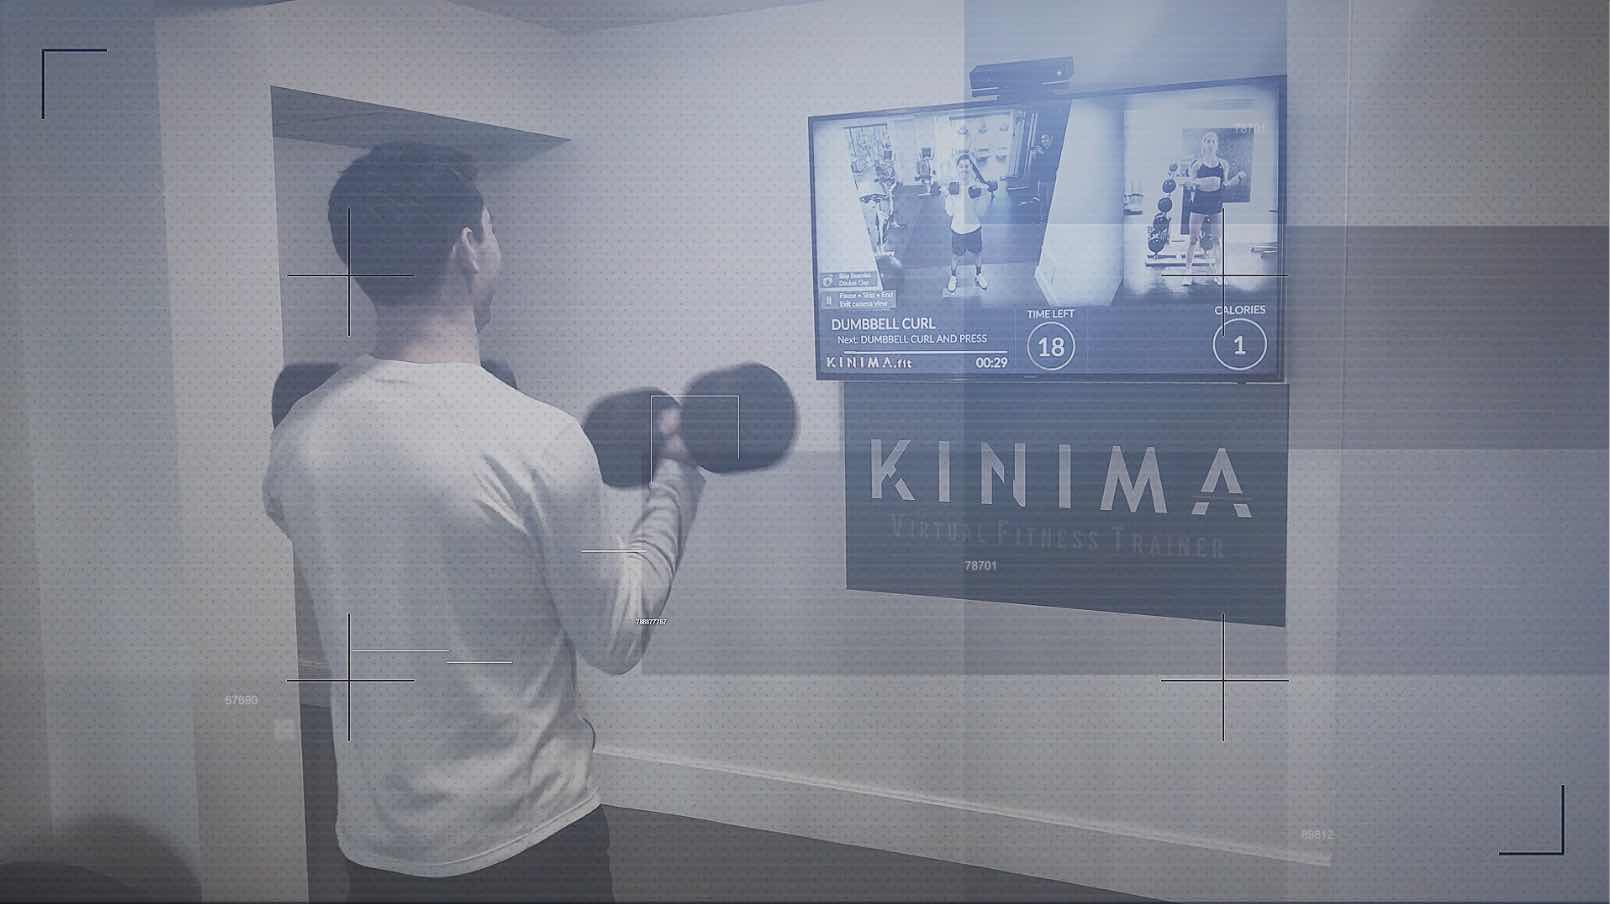 SMART, ADAPTIVE WORKOUTS - Kinima tracks your reps, effort and calories burnt during your workout and uses artificial intelligence to customize your next workout